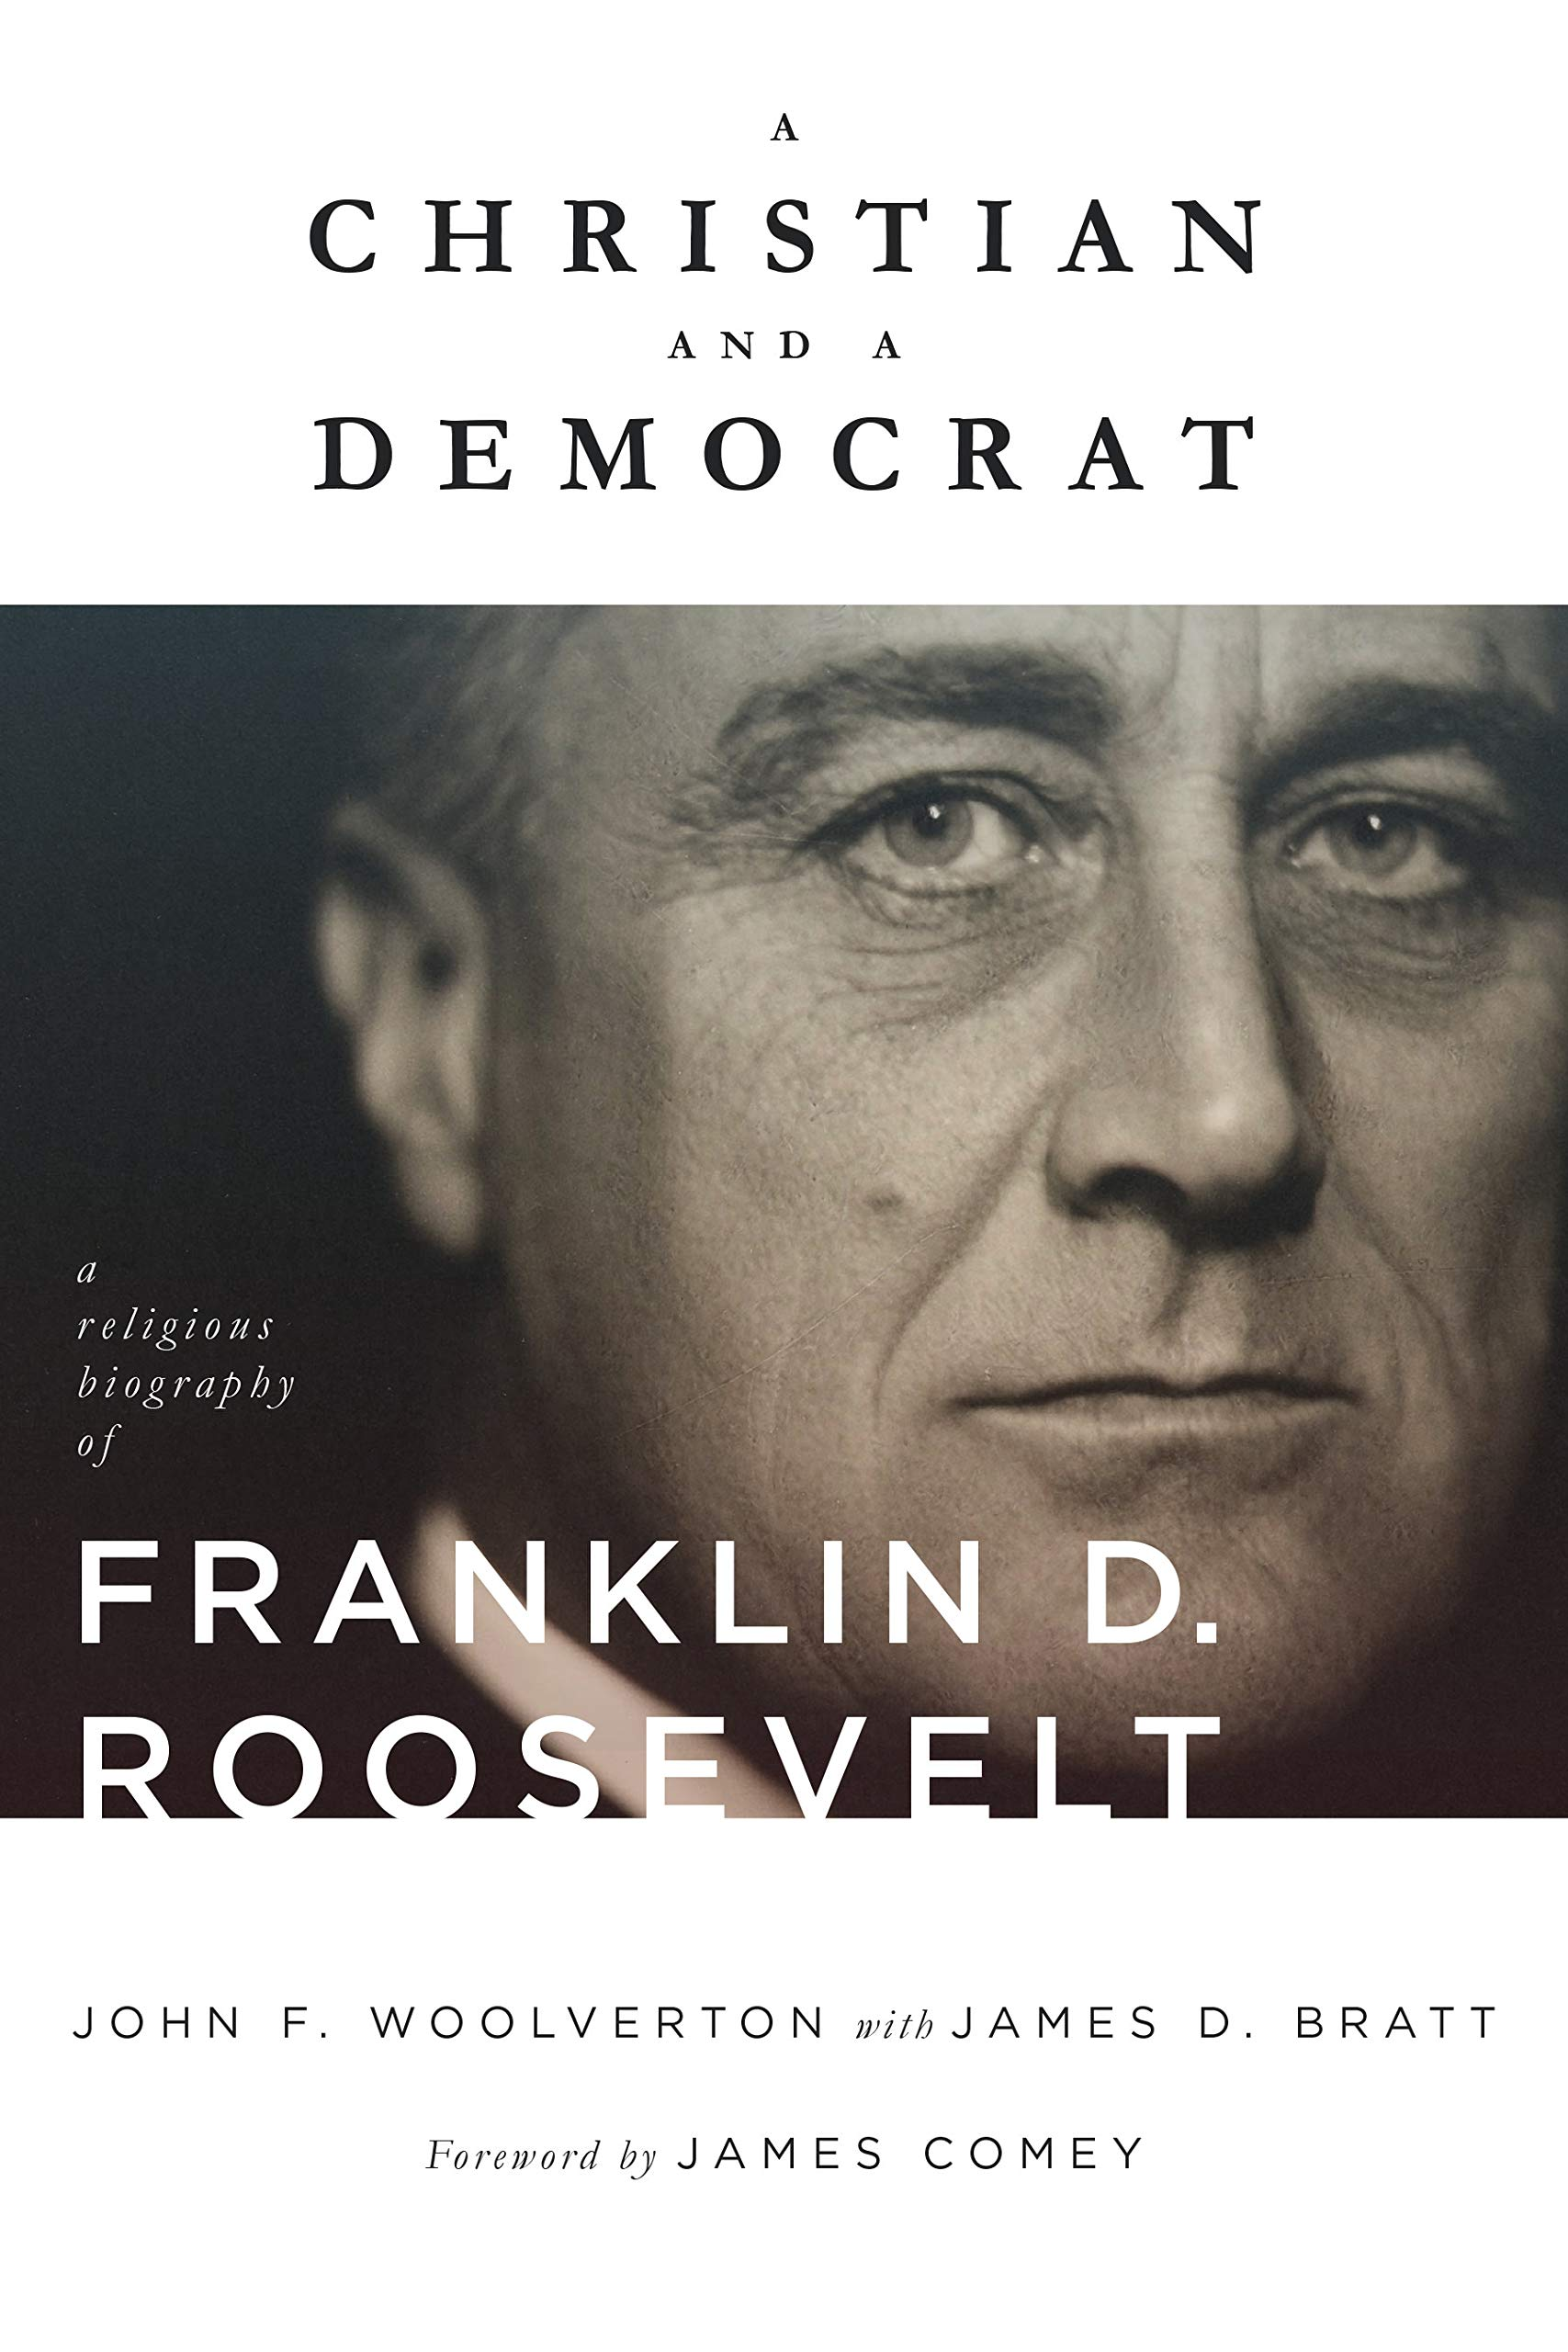 a christian and a democrat a religious biography of franklin d roosevelt library of religious biography lrb